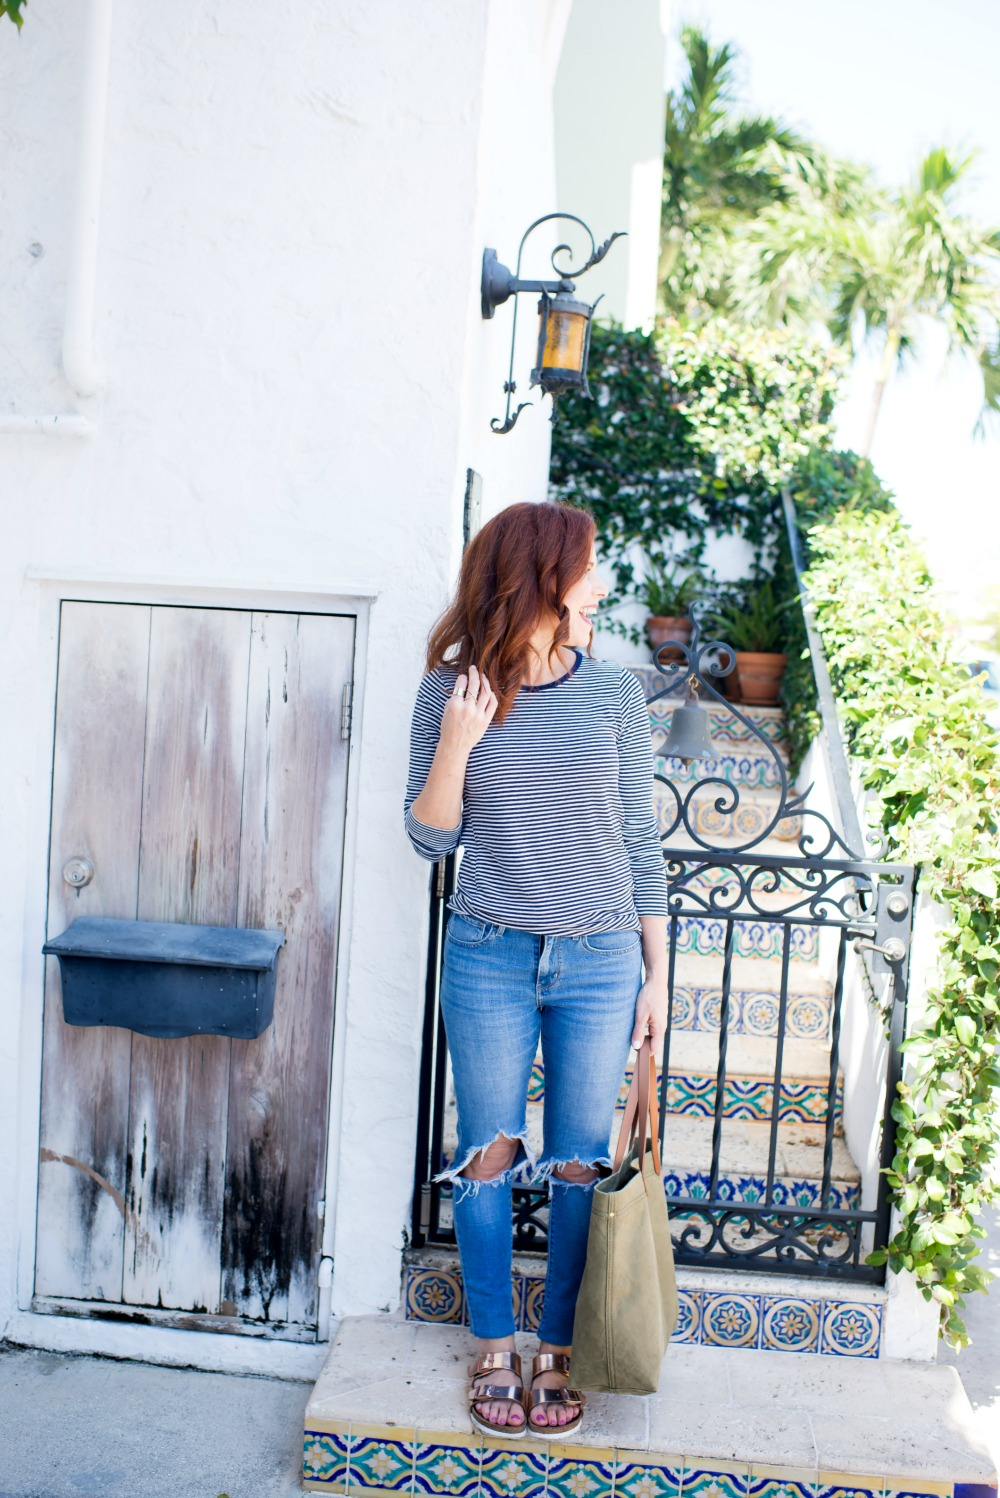 stripes, distressed denim and birkenstocks // the modern savvy, a life & style blog based in palm beach - Everyday essentials by popular Florida style blogger, The Modern Savvy